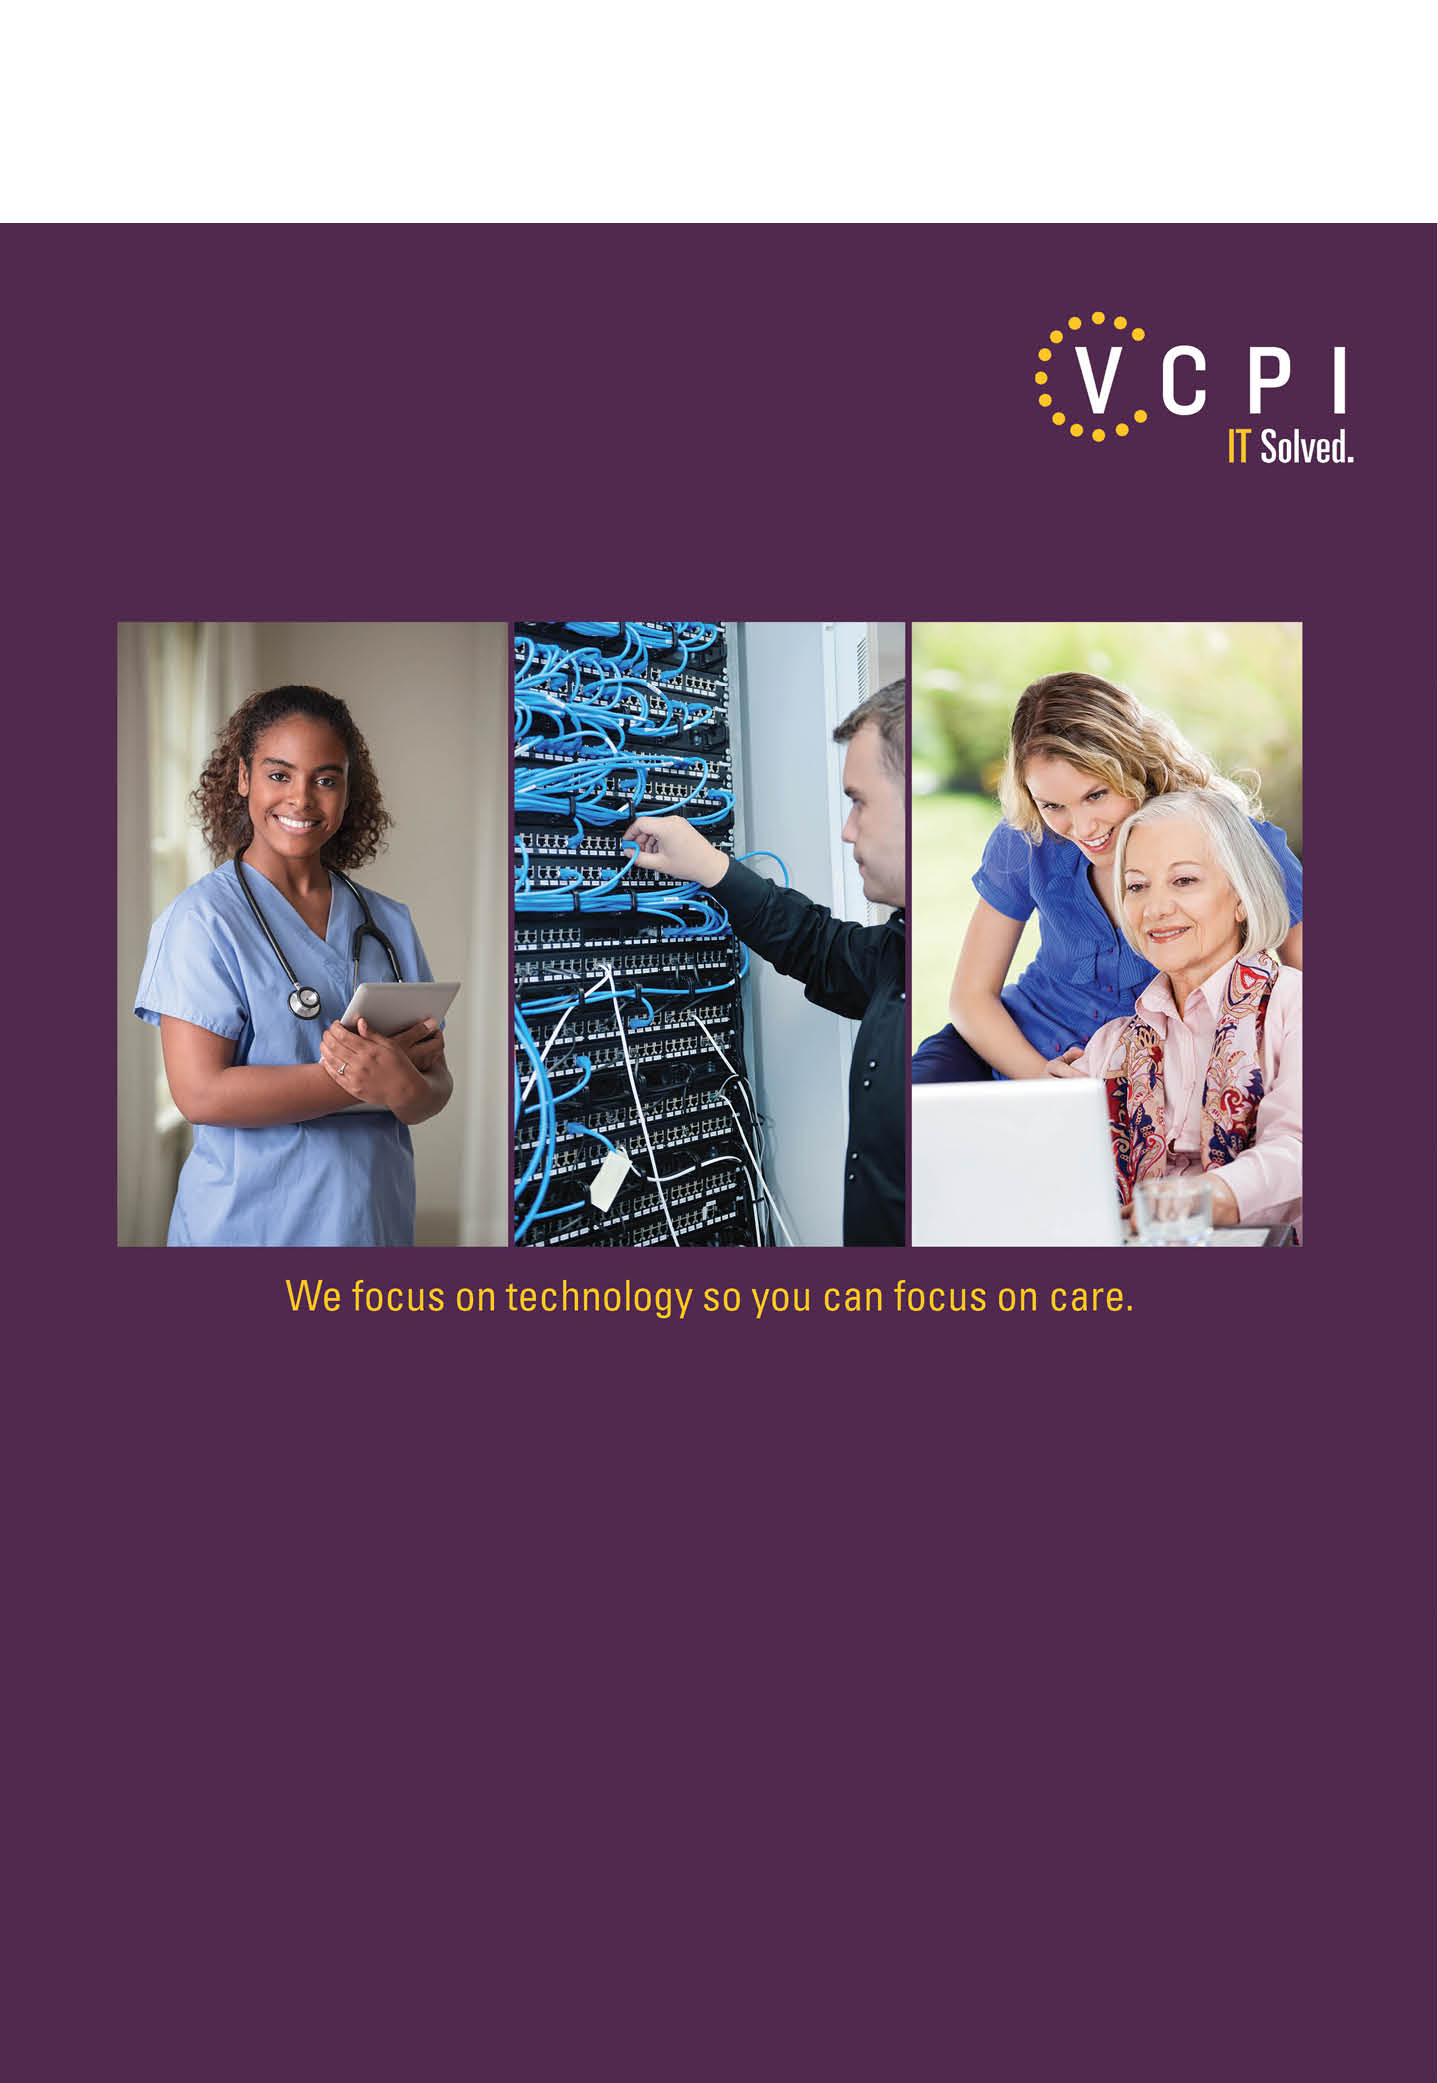 VCPI Overview Brochure